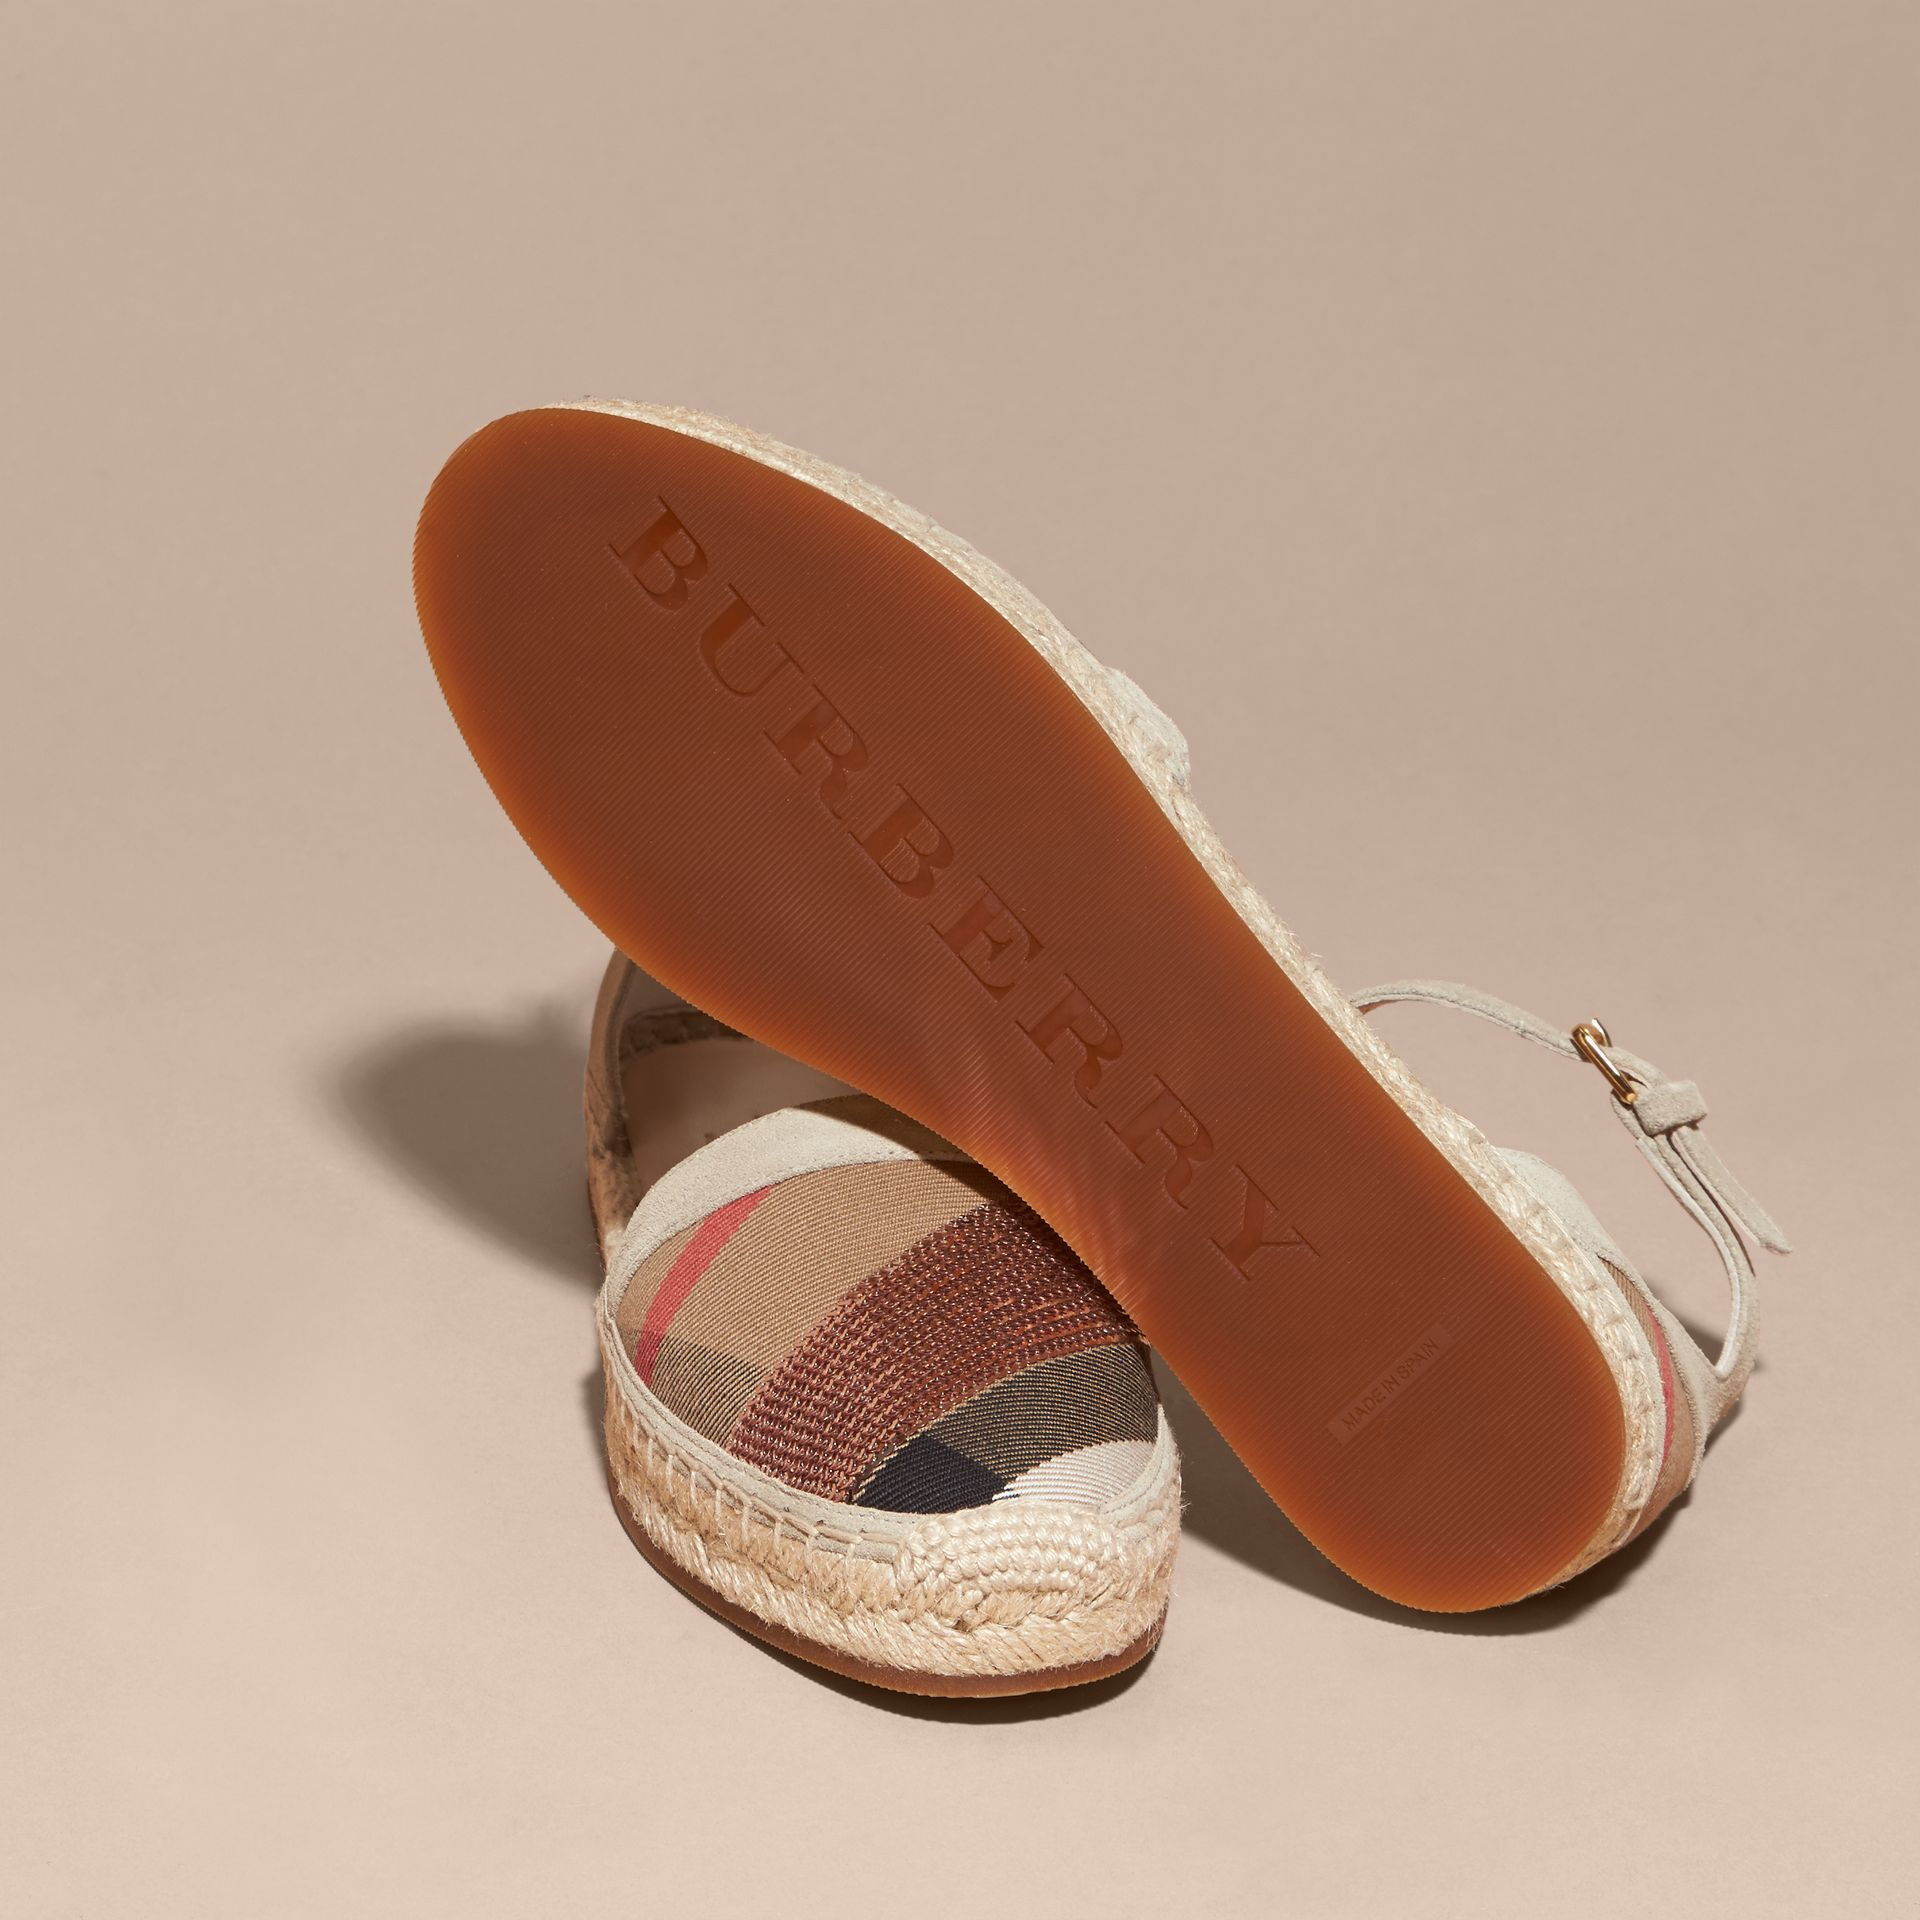 House check/pale pink Sequinned Leather and House Check Espadrille Sandals Check/pale Pink - gallery image 5